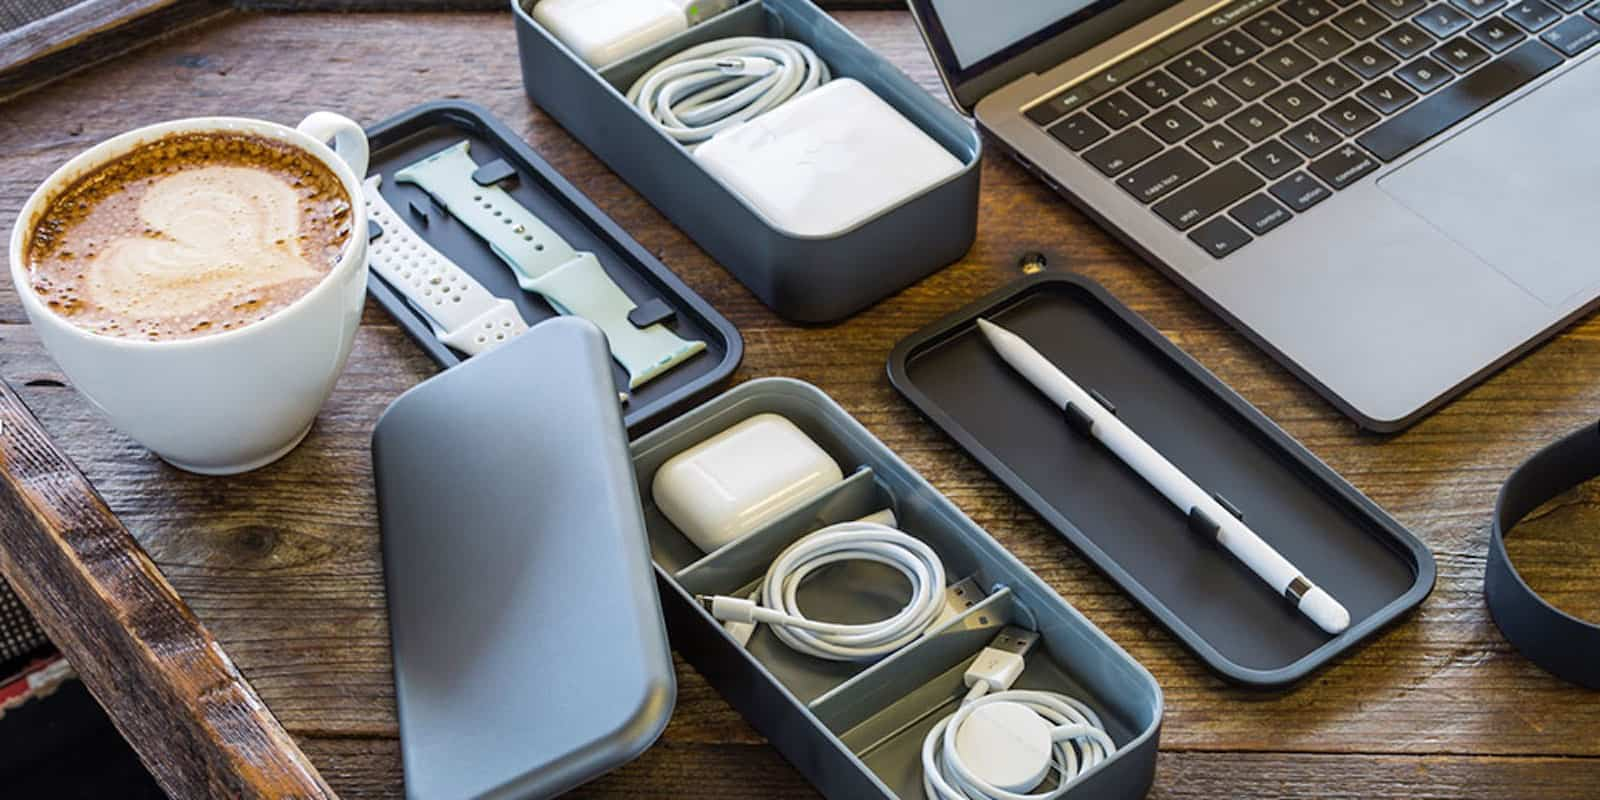 Instead of just shoving your Apple extras into a drawer or pocket, keep them in this sleek, modular, Japanese-inspired organizer.